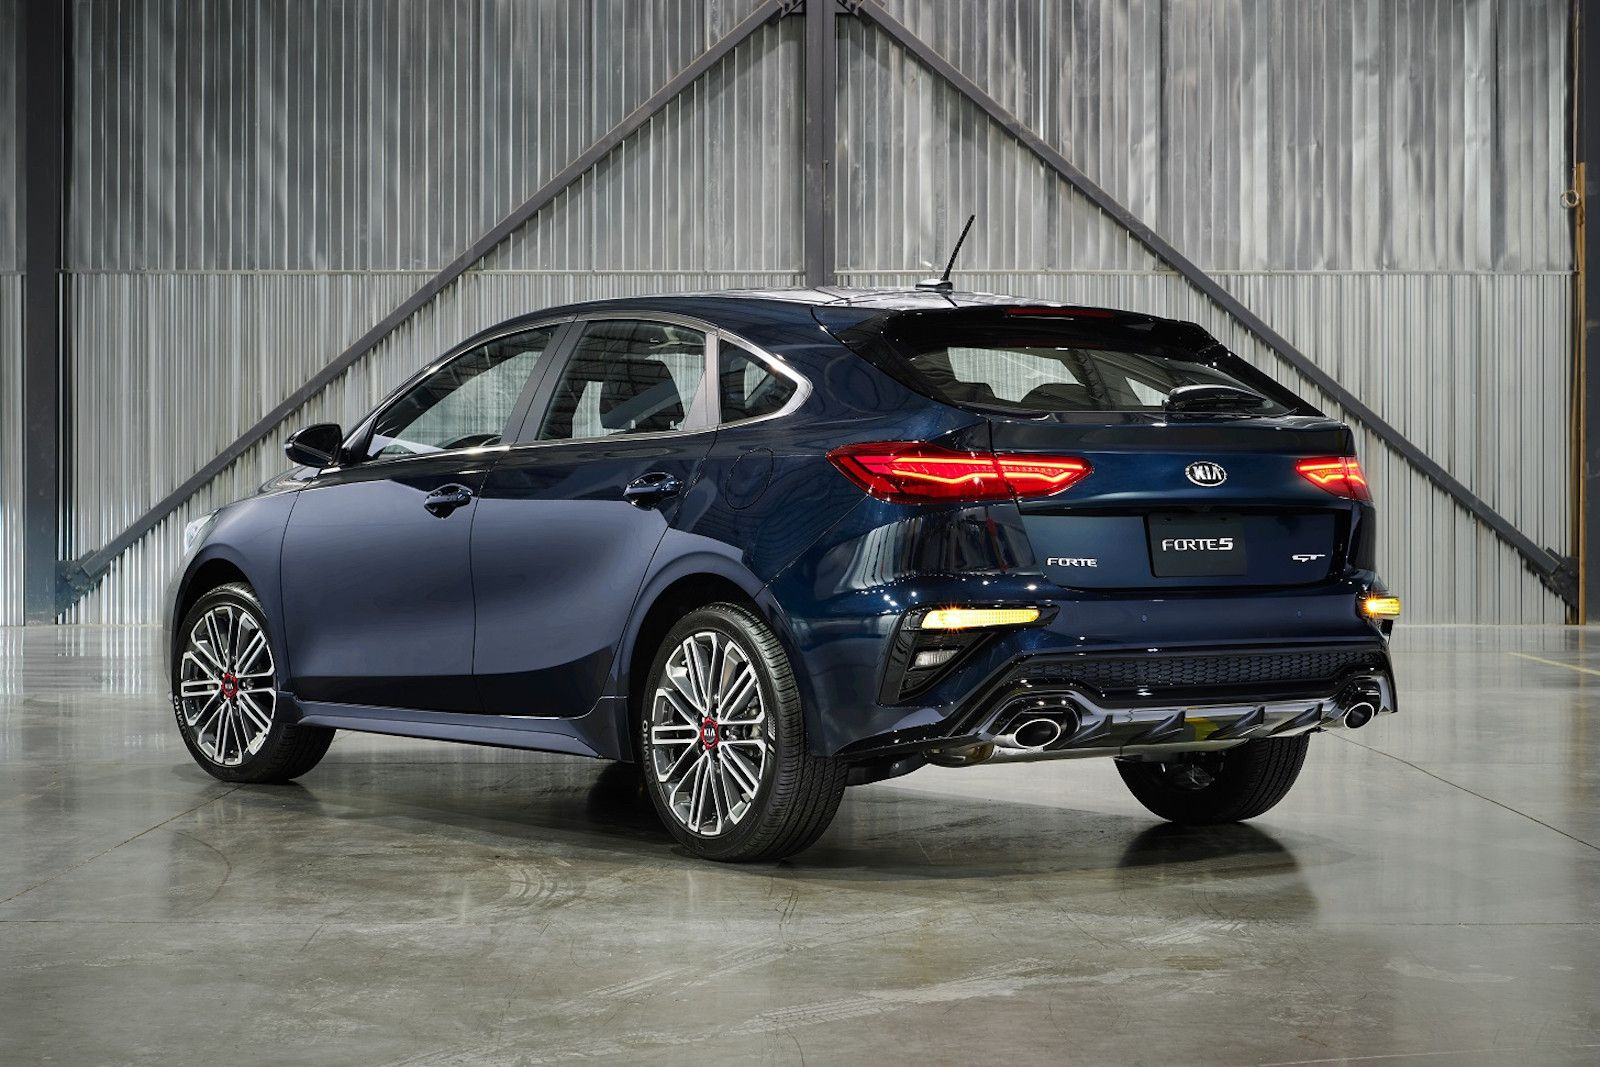 2020 Kia Hatchback Redesign and Price di 2020